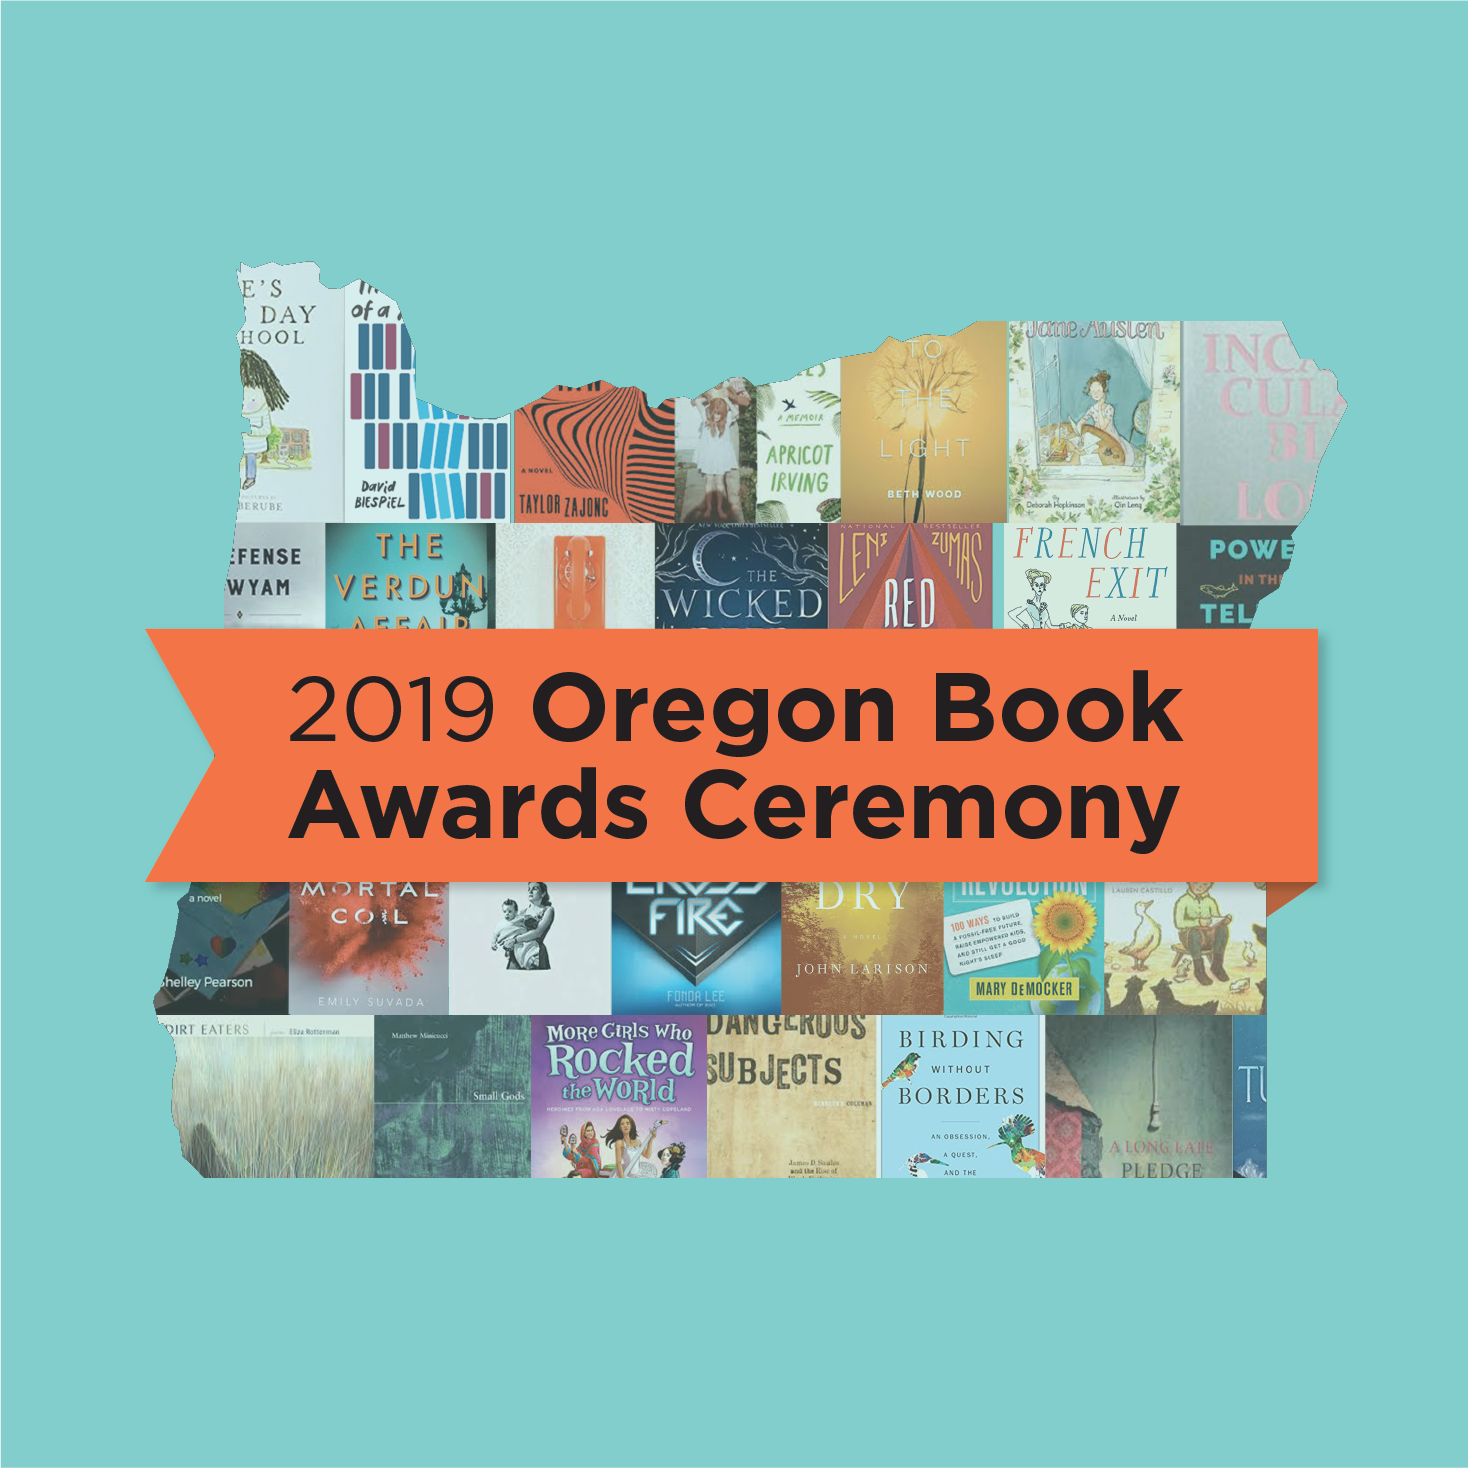 2019 Oregon Book Awards Ceremony